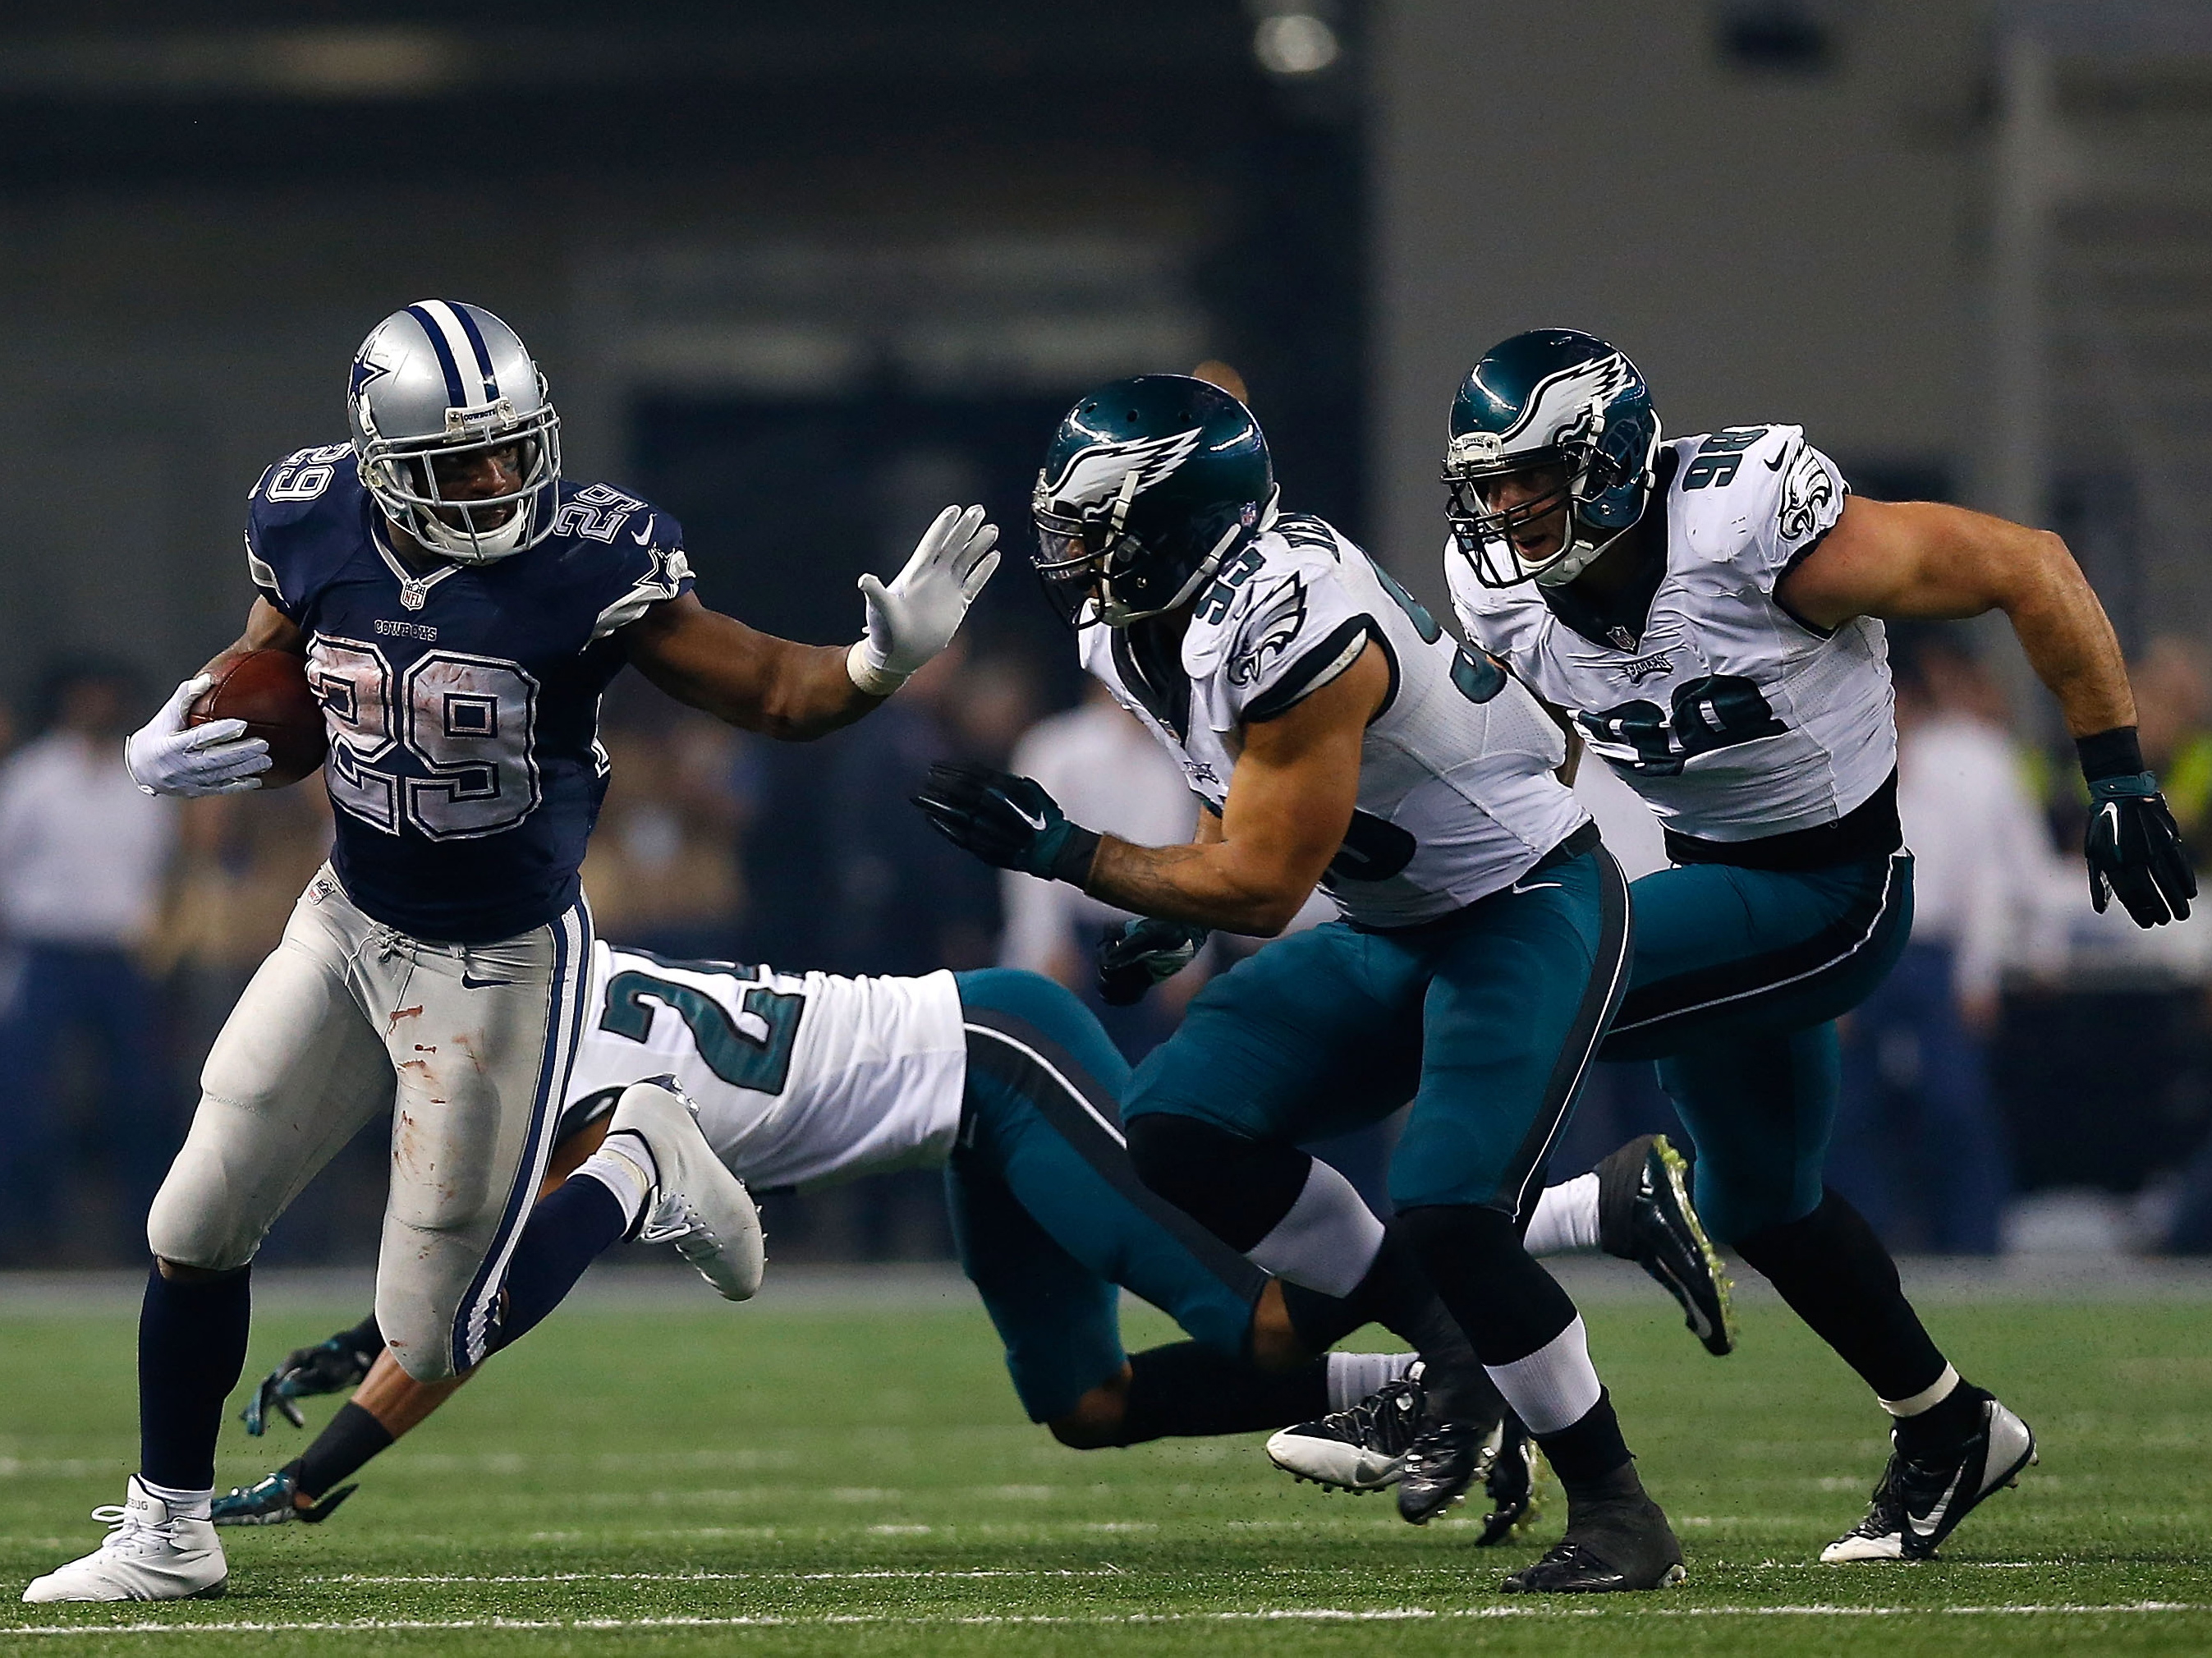 DeMarco Murray, formerly of the Dallas Cowboys. in a game against the Philadelphia Eagles at AT&T Stadium on Nov. 27, 2014 in Arlington, Texas.